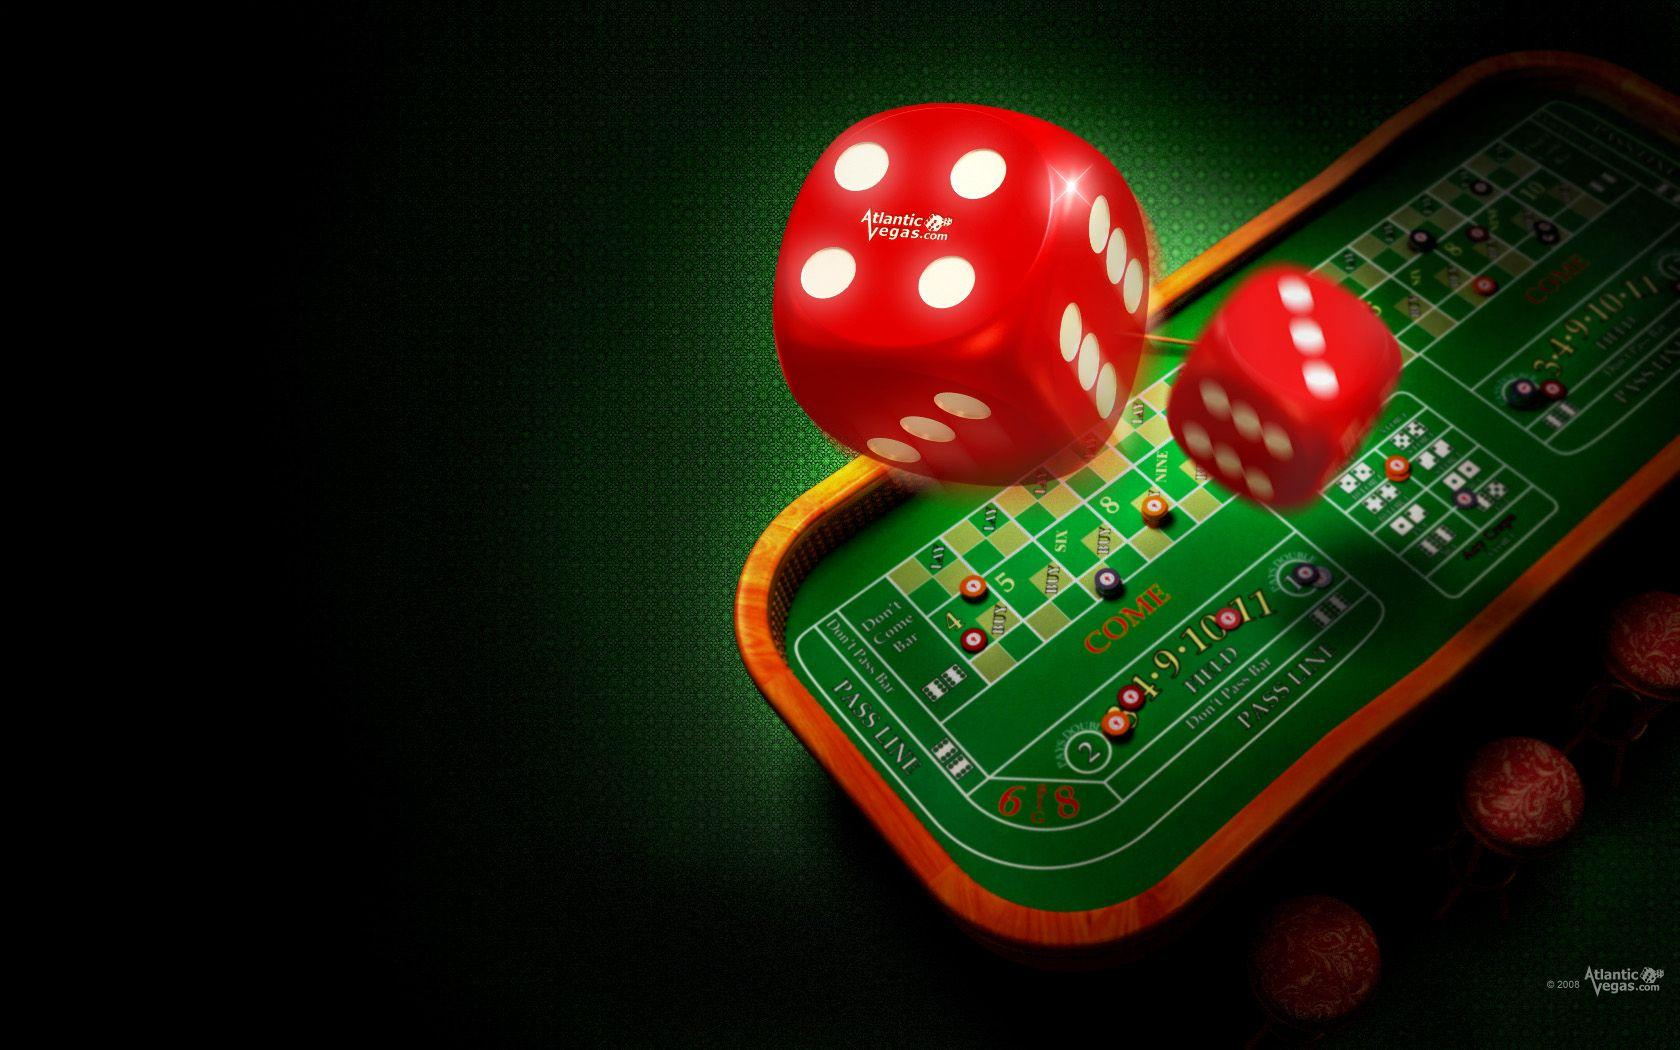 The Way To Make Your Product The Ferrari Of Online Casino